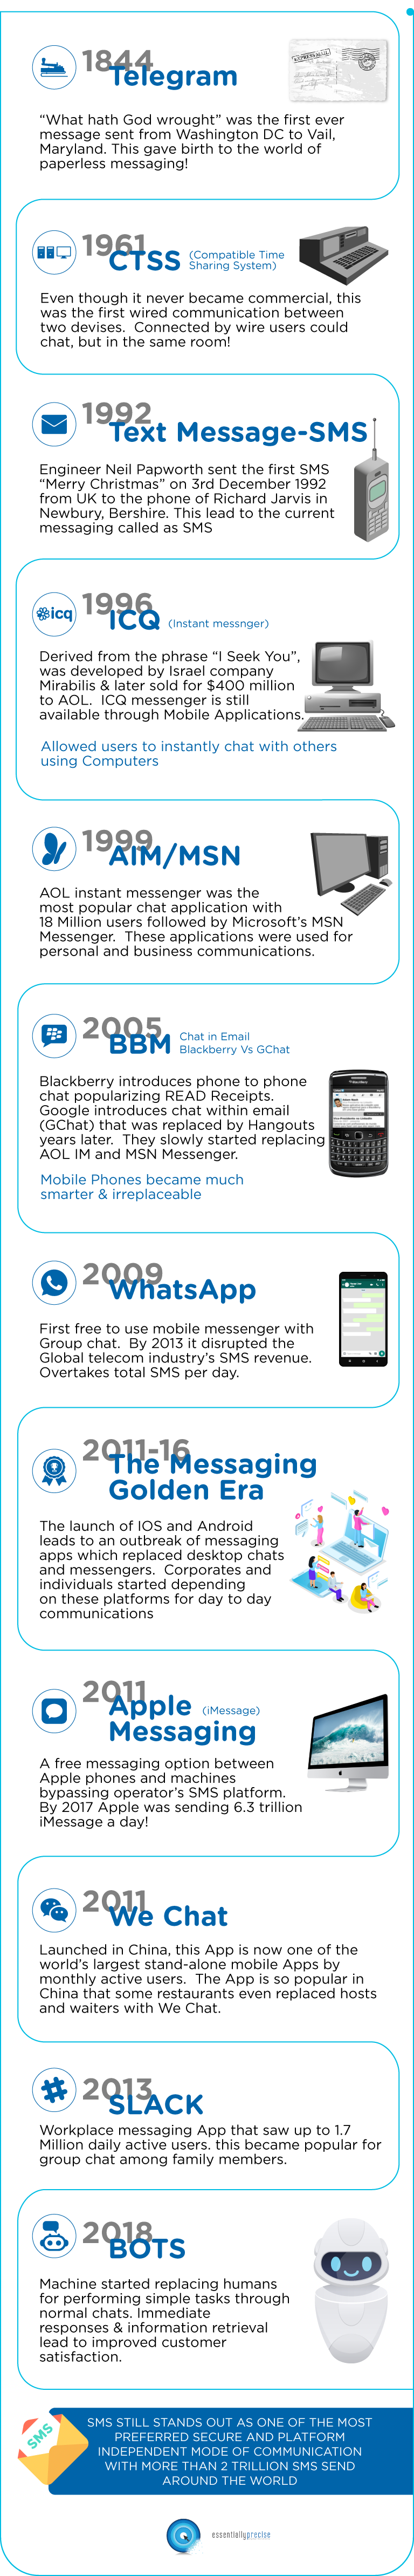 Evolution of Messaging - Infographics (Mobile)